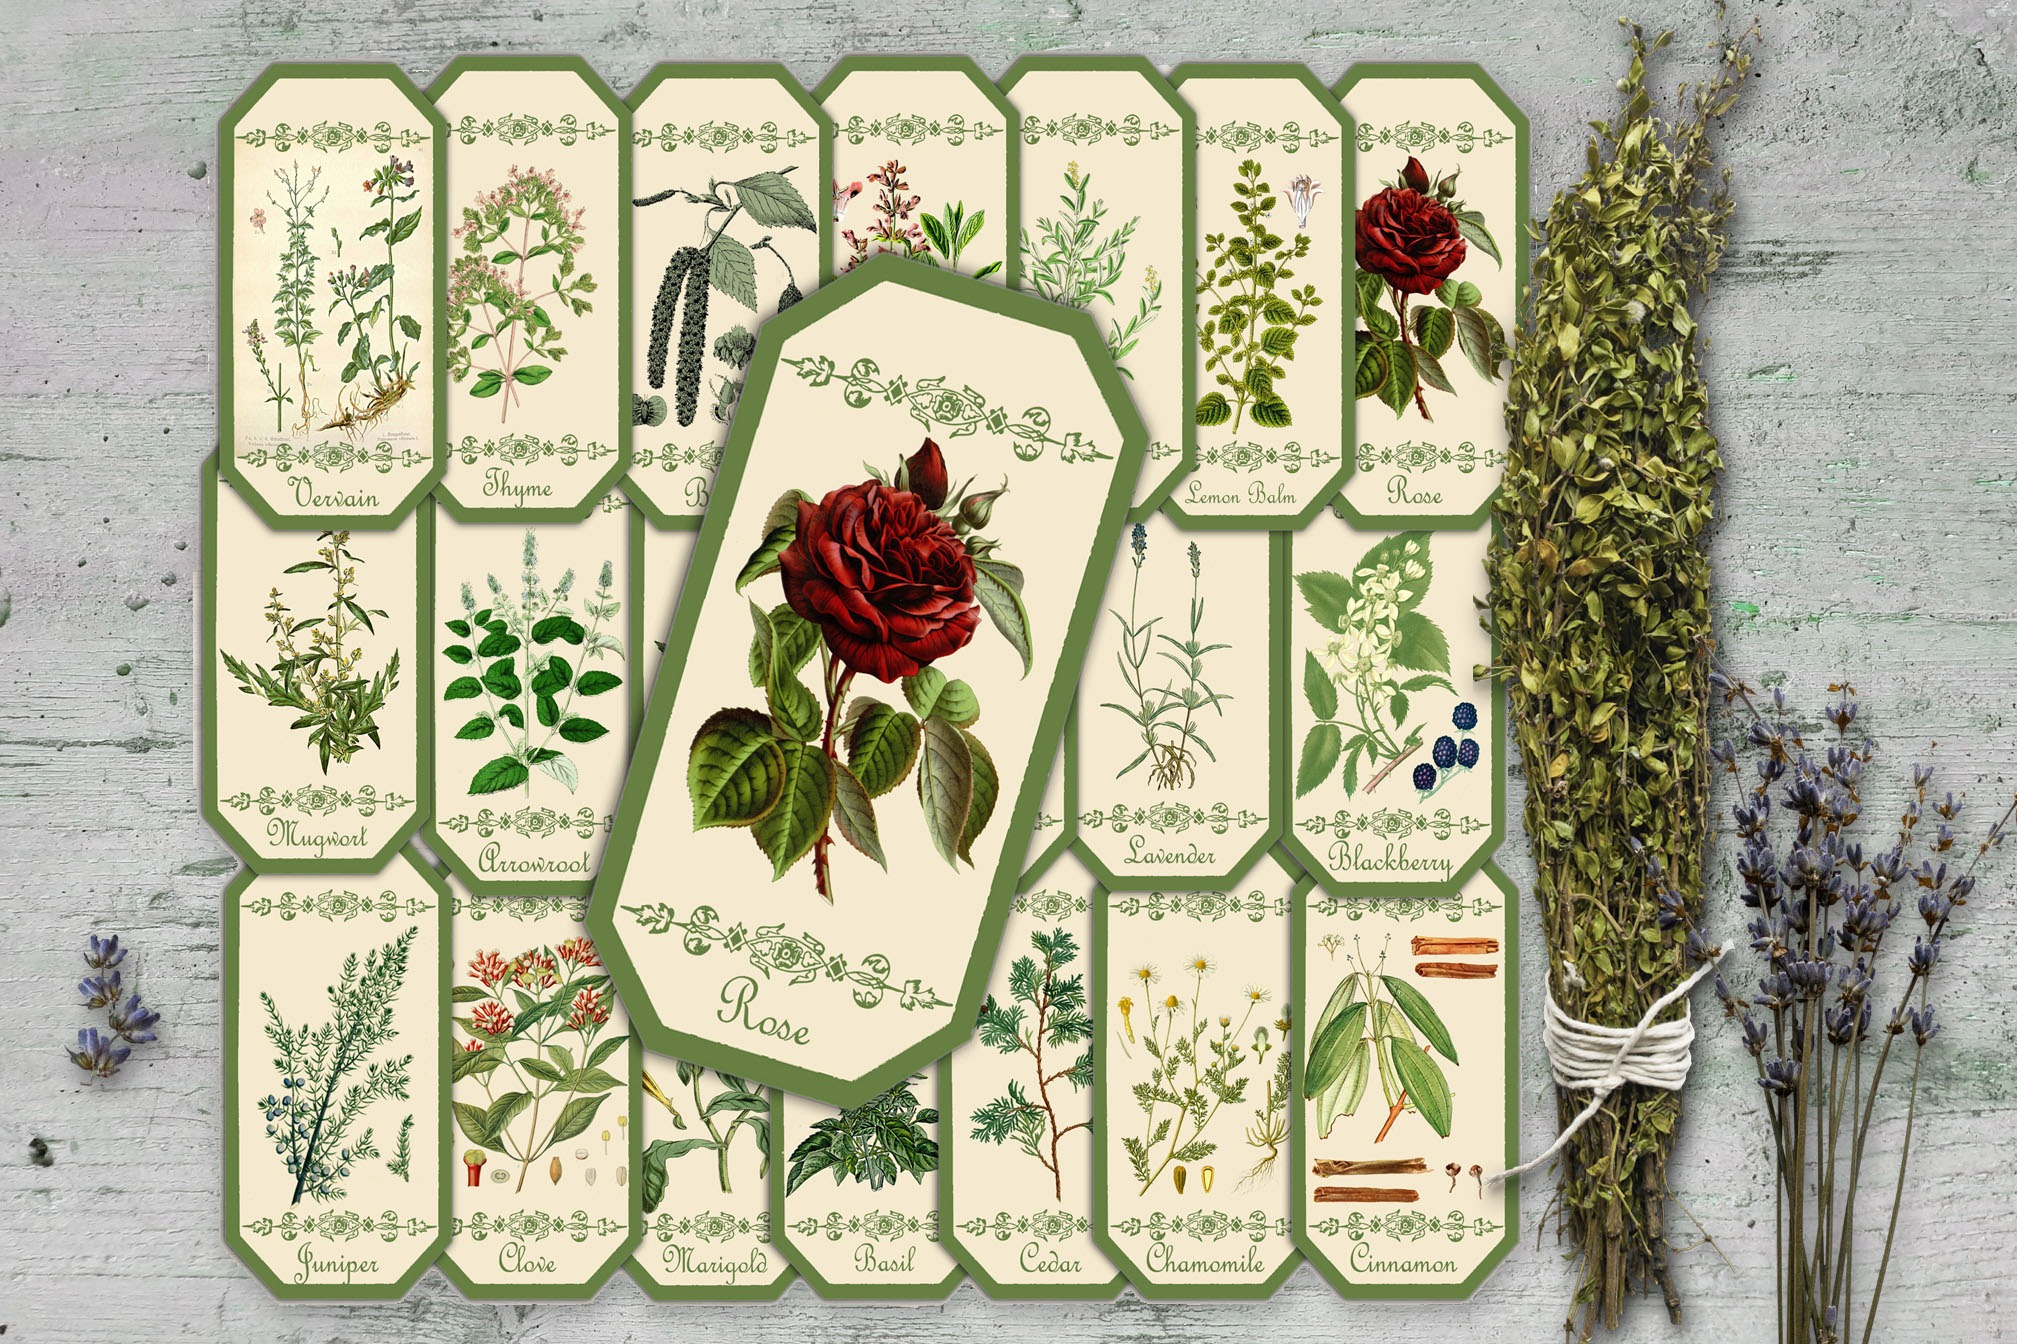 HERBAL APOTHECARY LABELS - 20 Labels